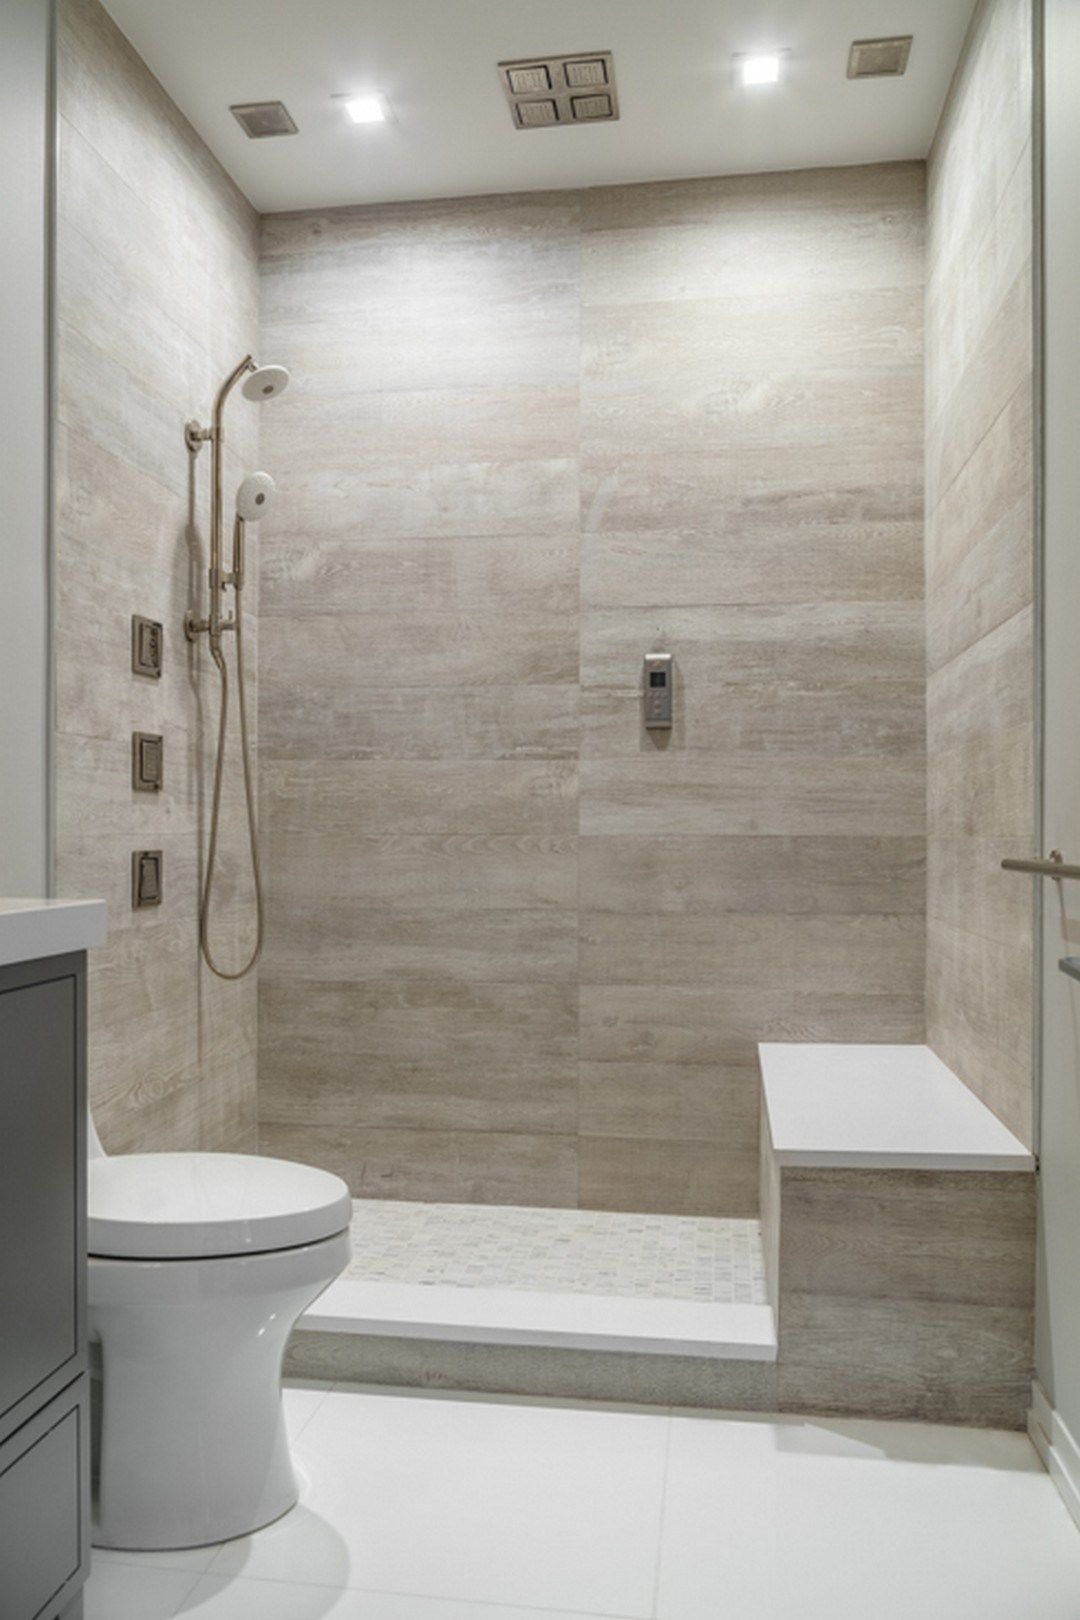 Design bathroom tiles find and save ideas about bathroom tile designs XTRSUHF